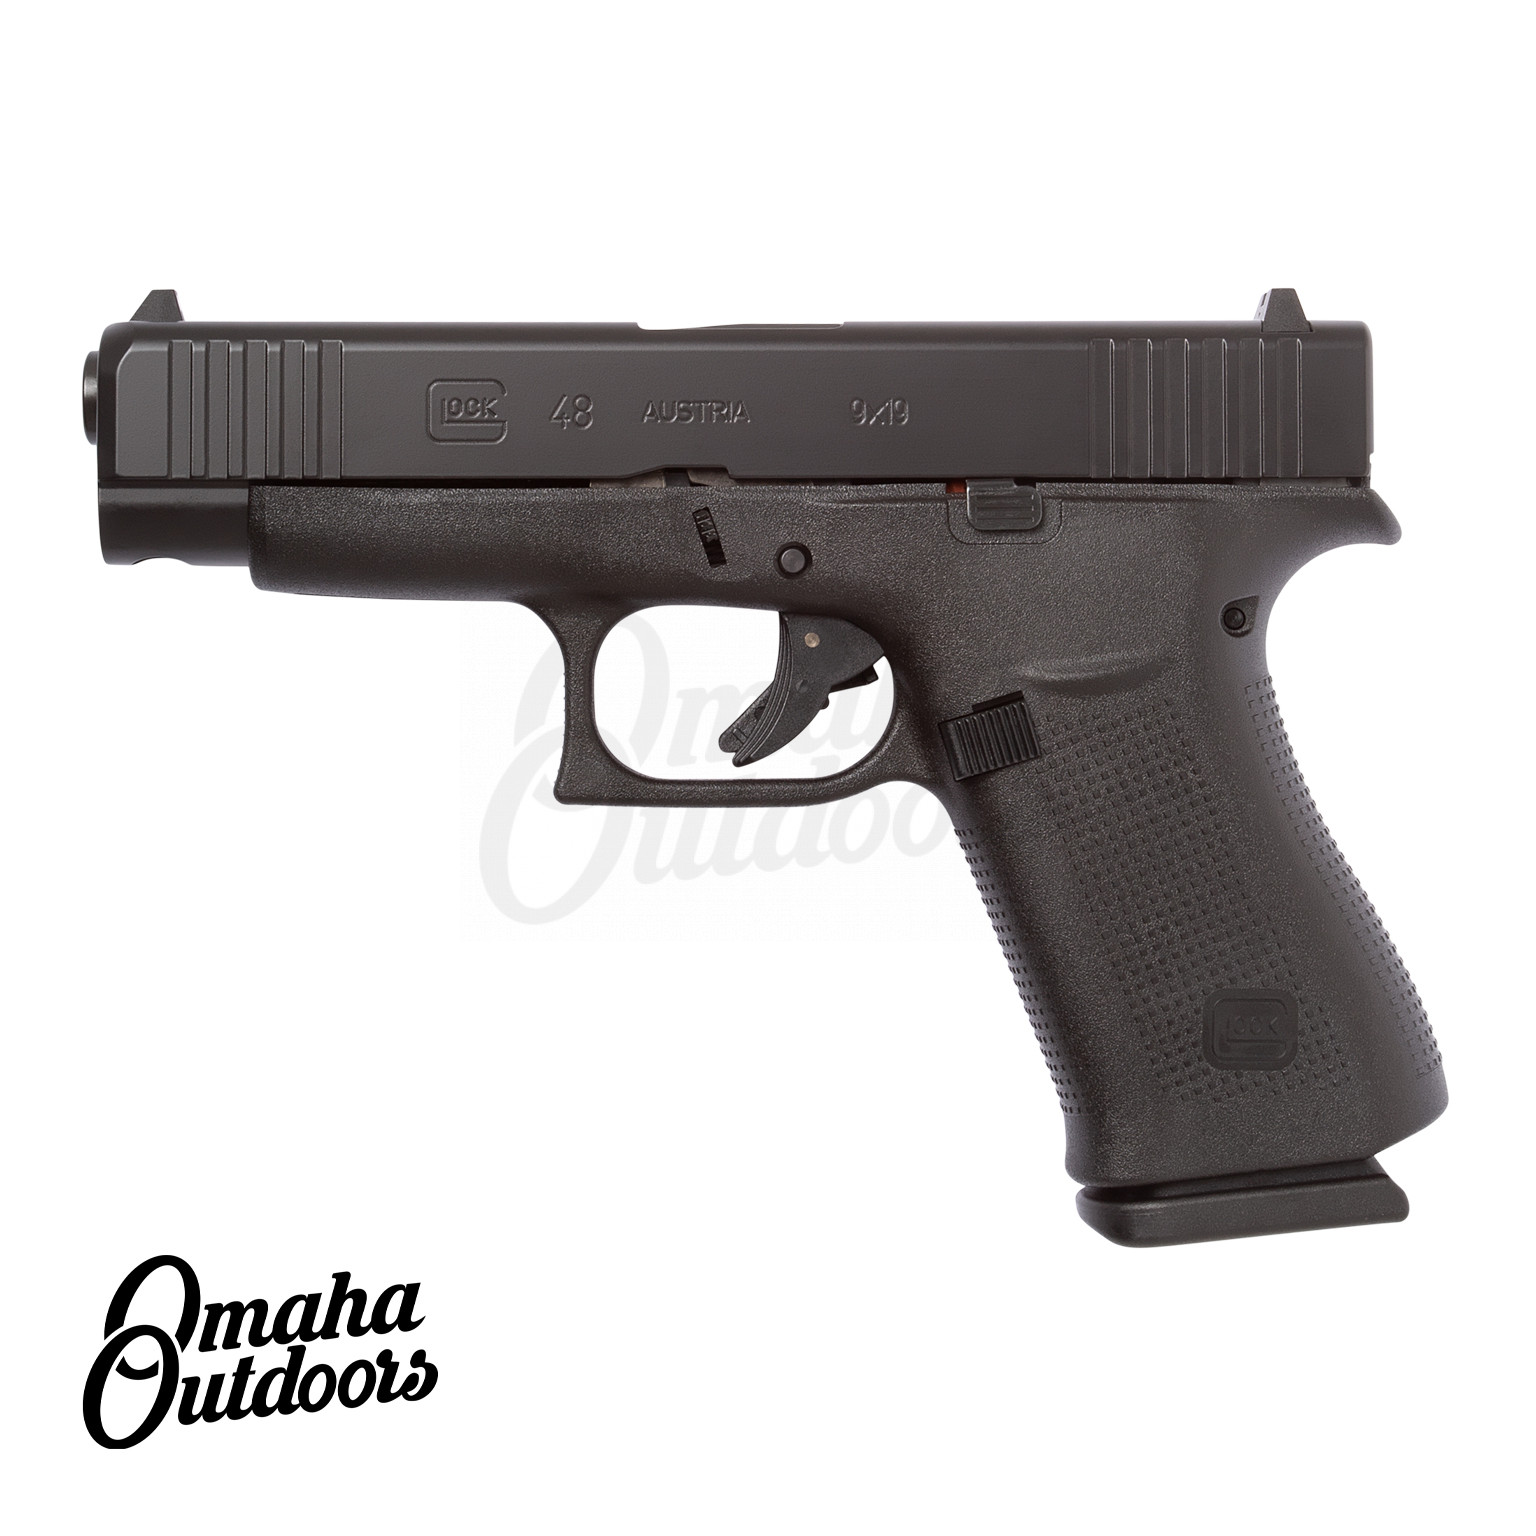 cheaper 6f752 b39be Glock 48 Pistol 9mm Black Slide 10 RD 4.17 PA485SL201-EBO-SL